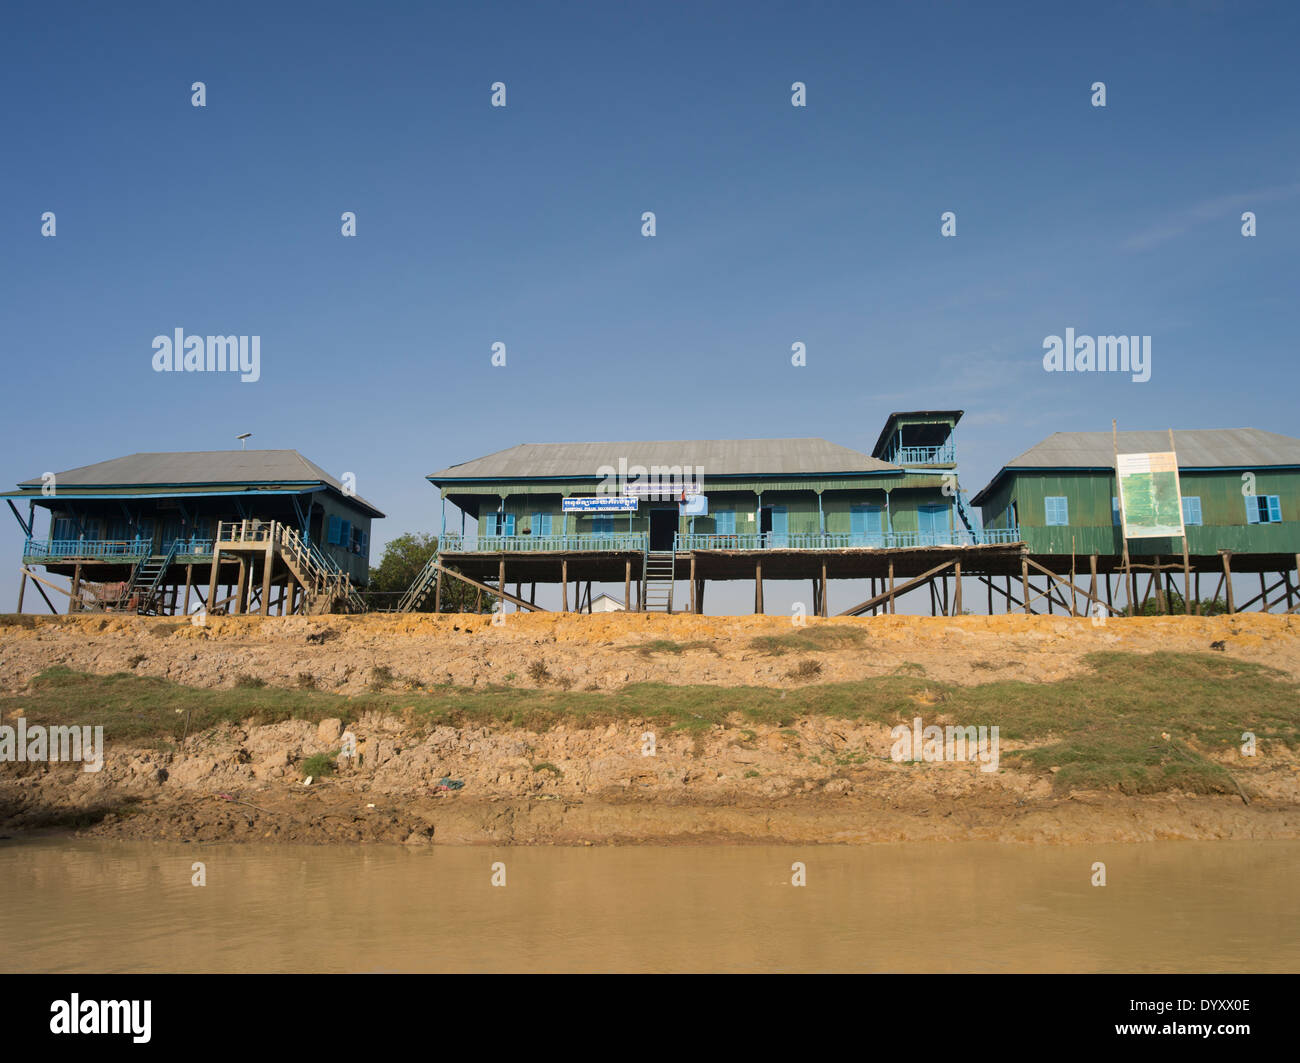 Secondary School at Kompong Pluk Floating Village near Siem Reap, Cambodia - Stock Image